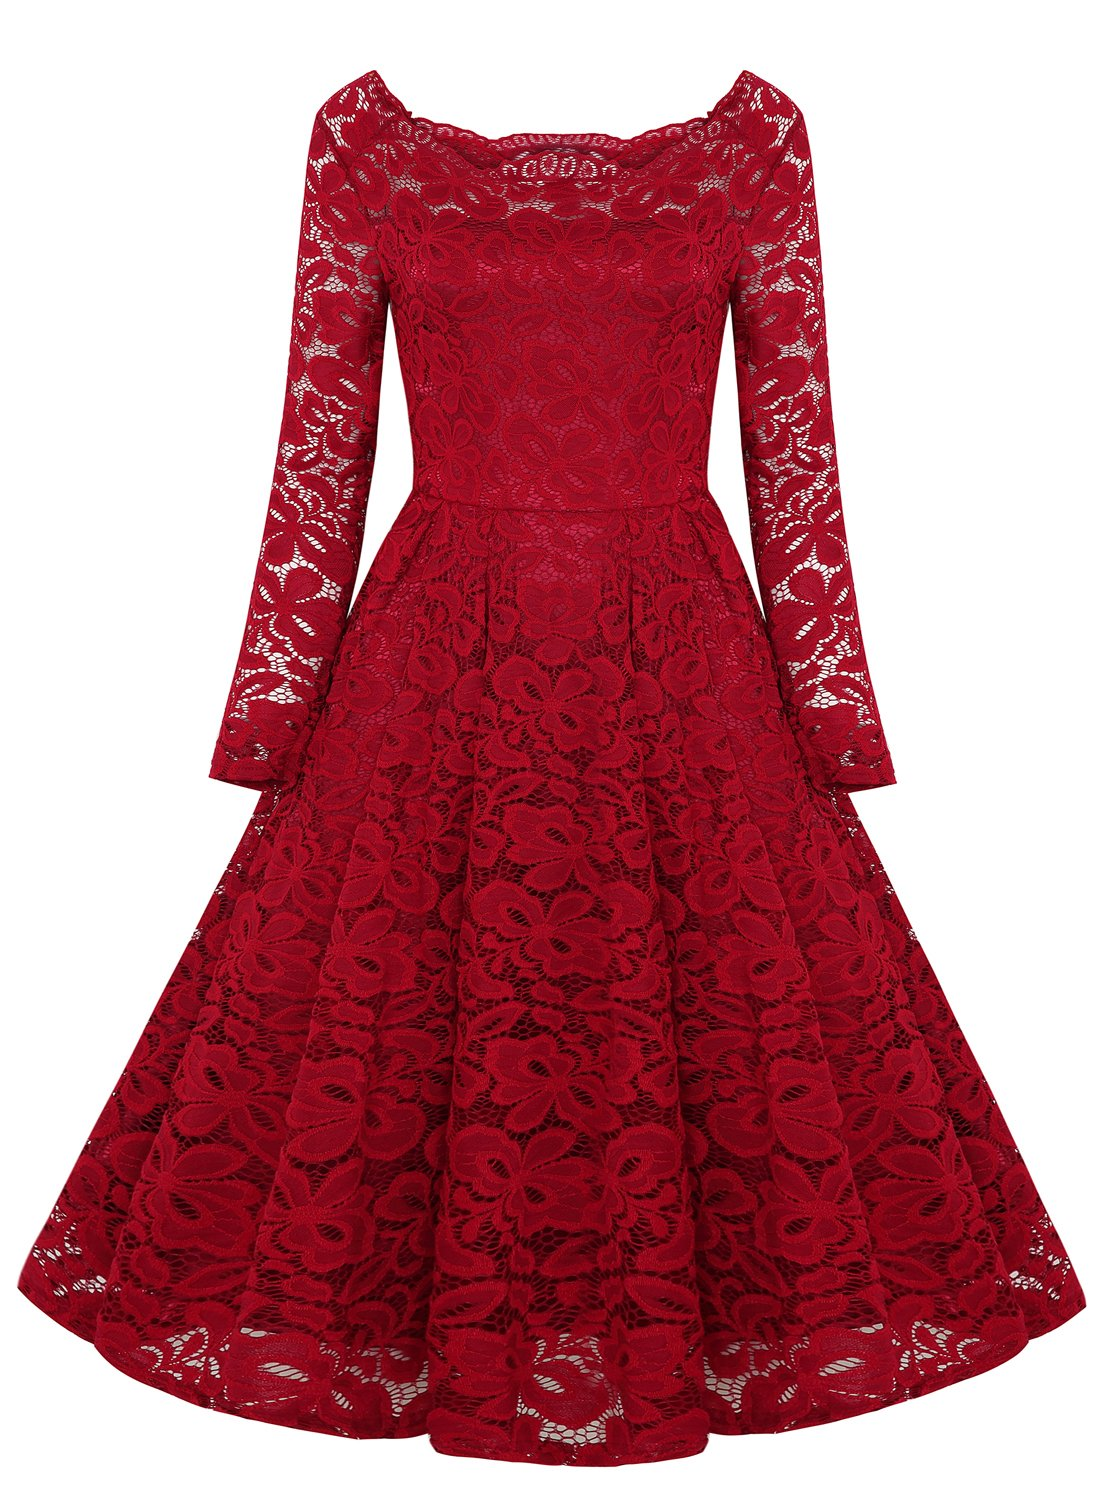 REMASIKO Womens Off Shoulder Lace Wedding Homecoming A-Line Cocktail Dress Burgundy Large